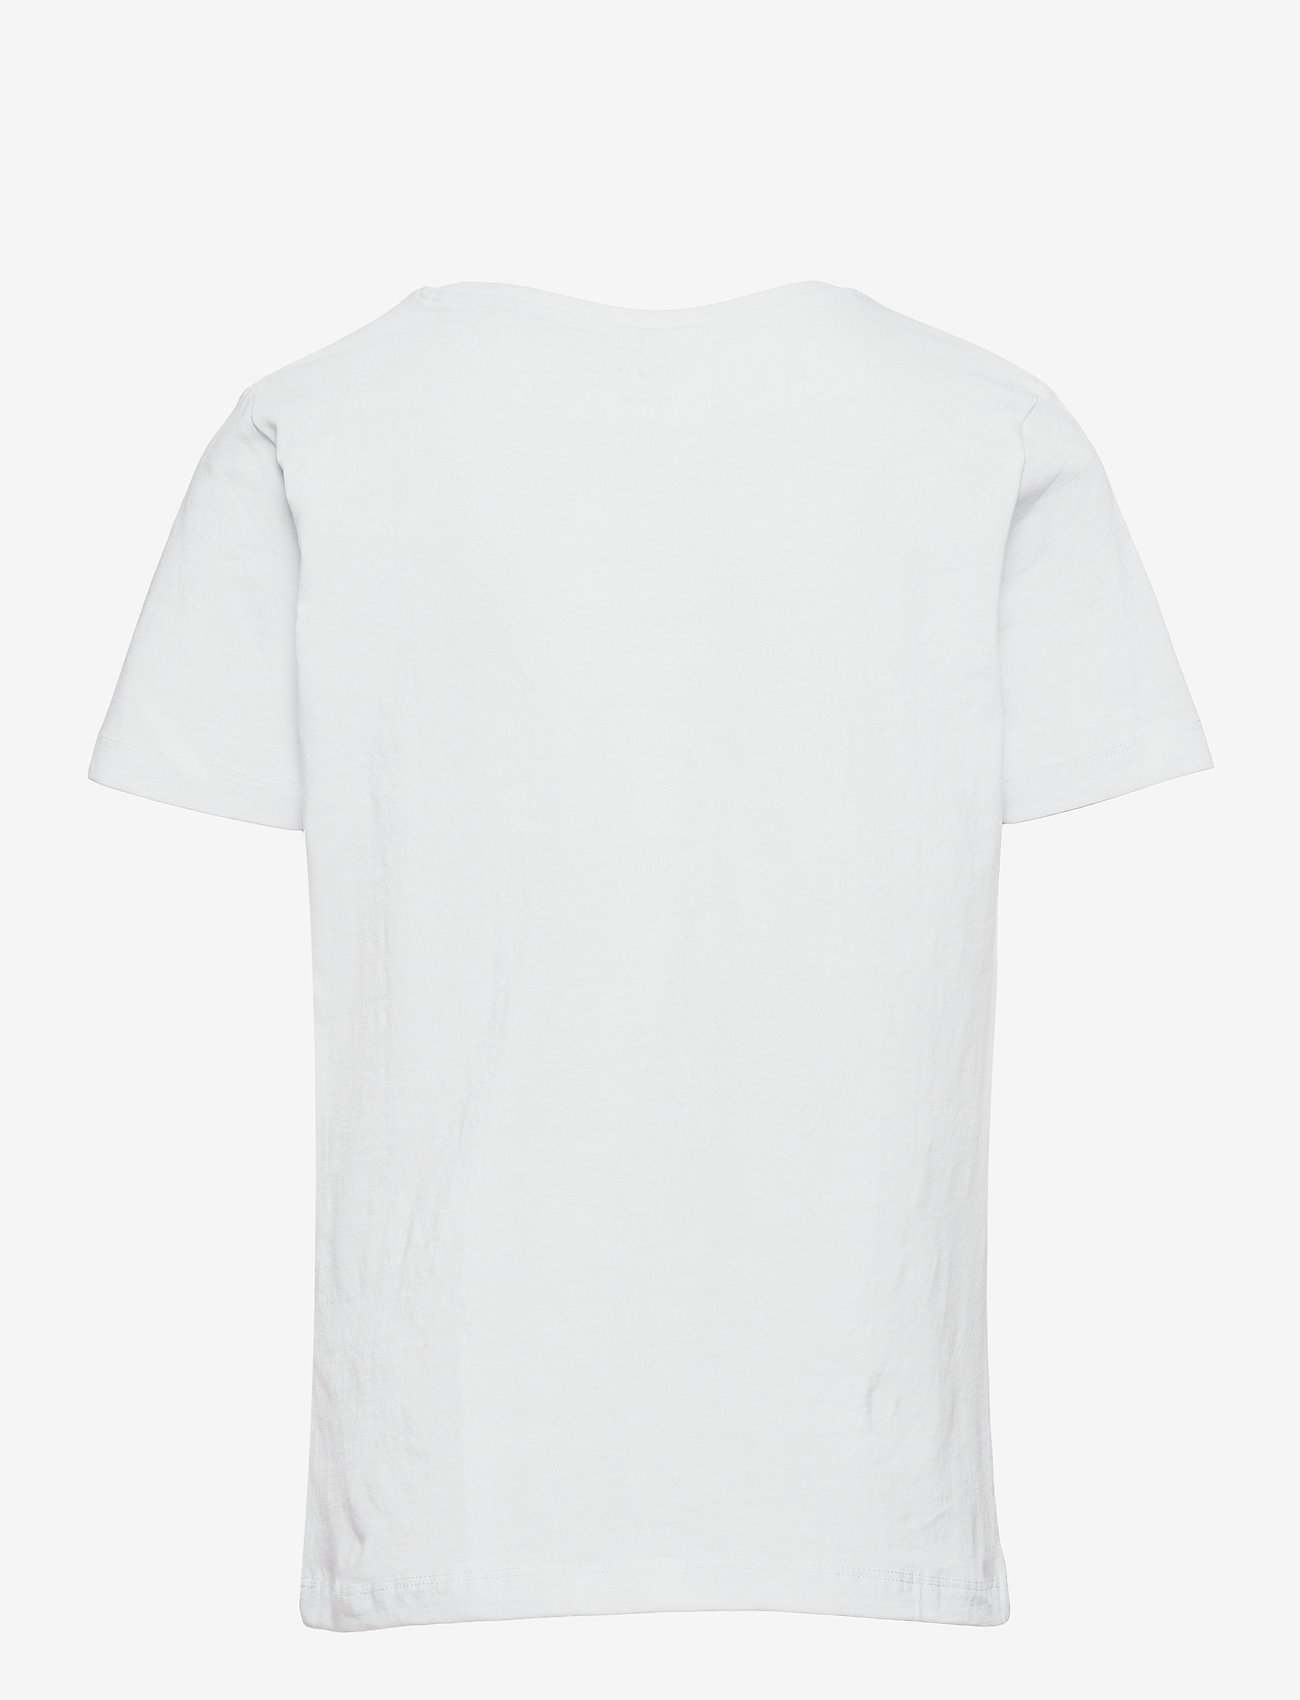 name it - NKMMENTOS ALEC SS TOP VDE - t-shirts - bright white - 1